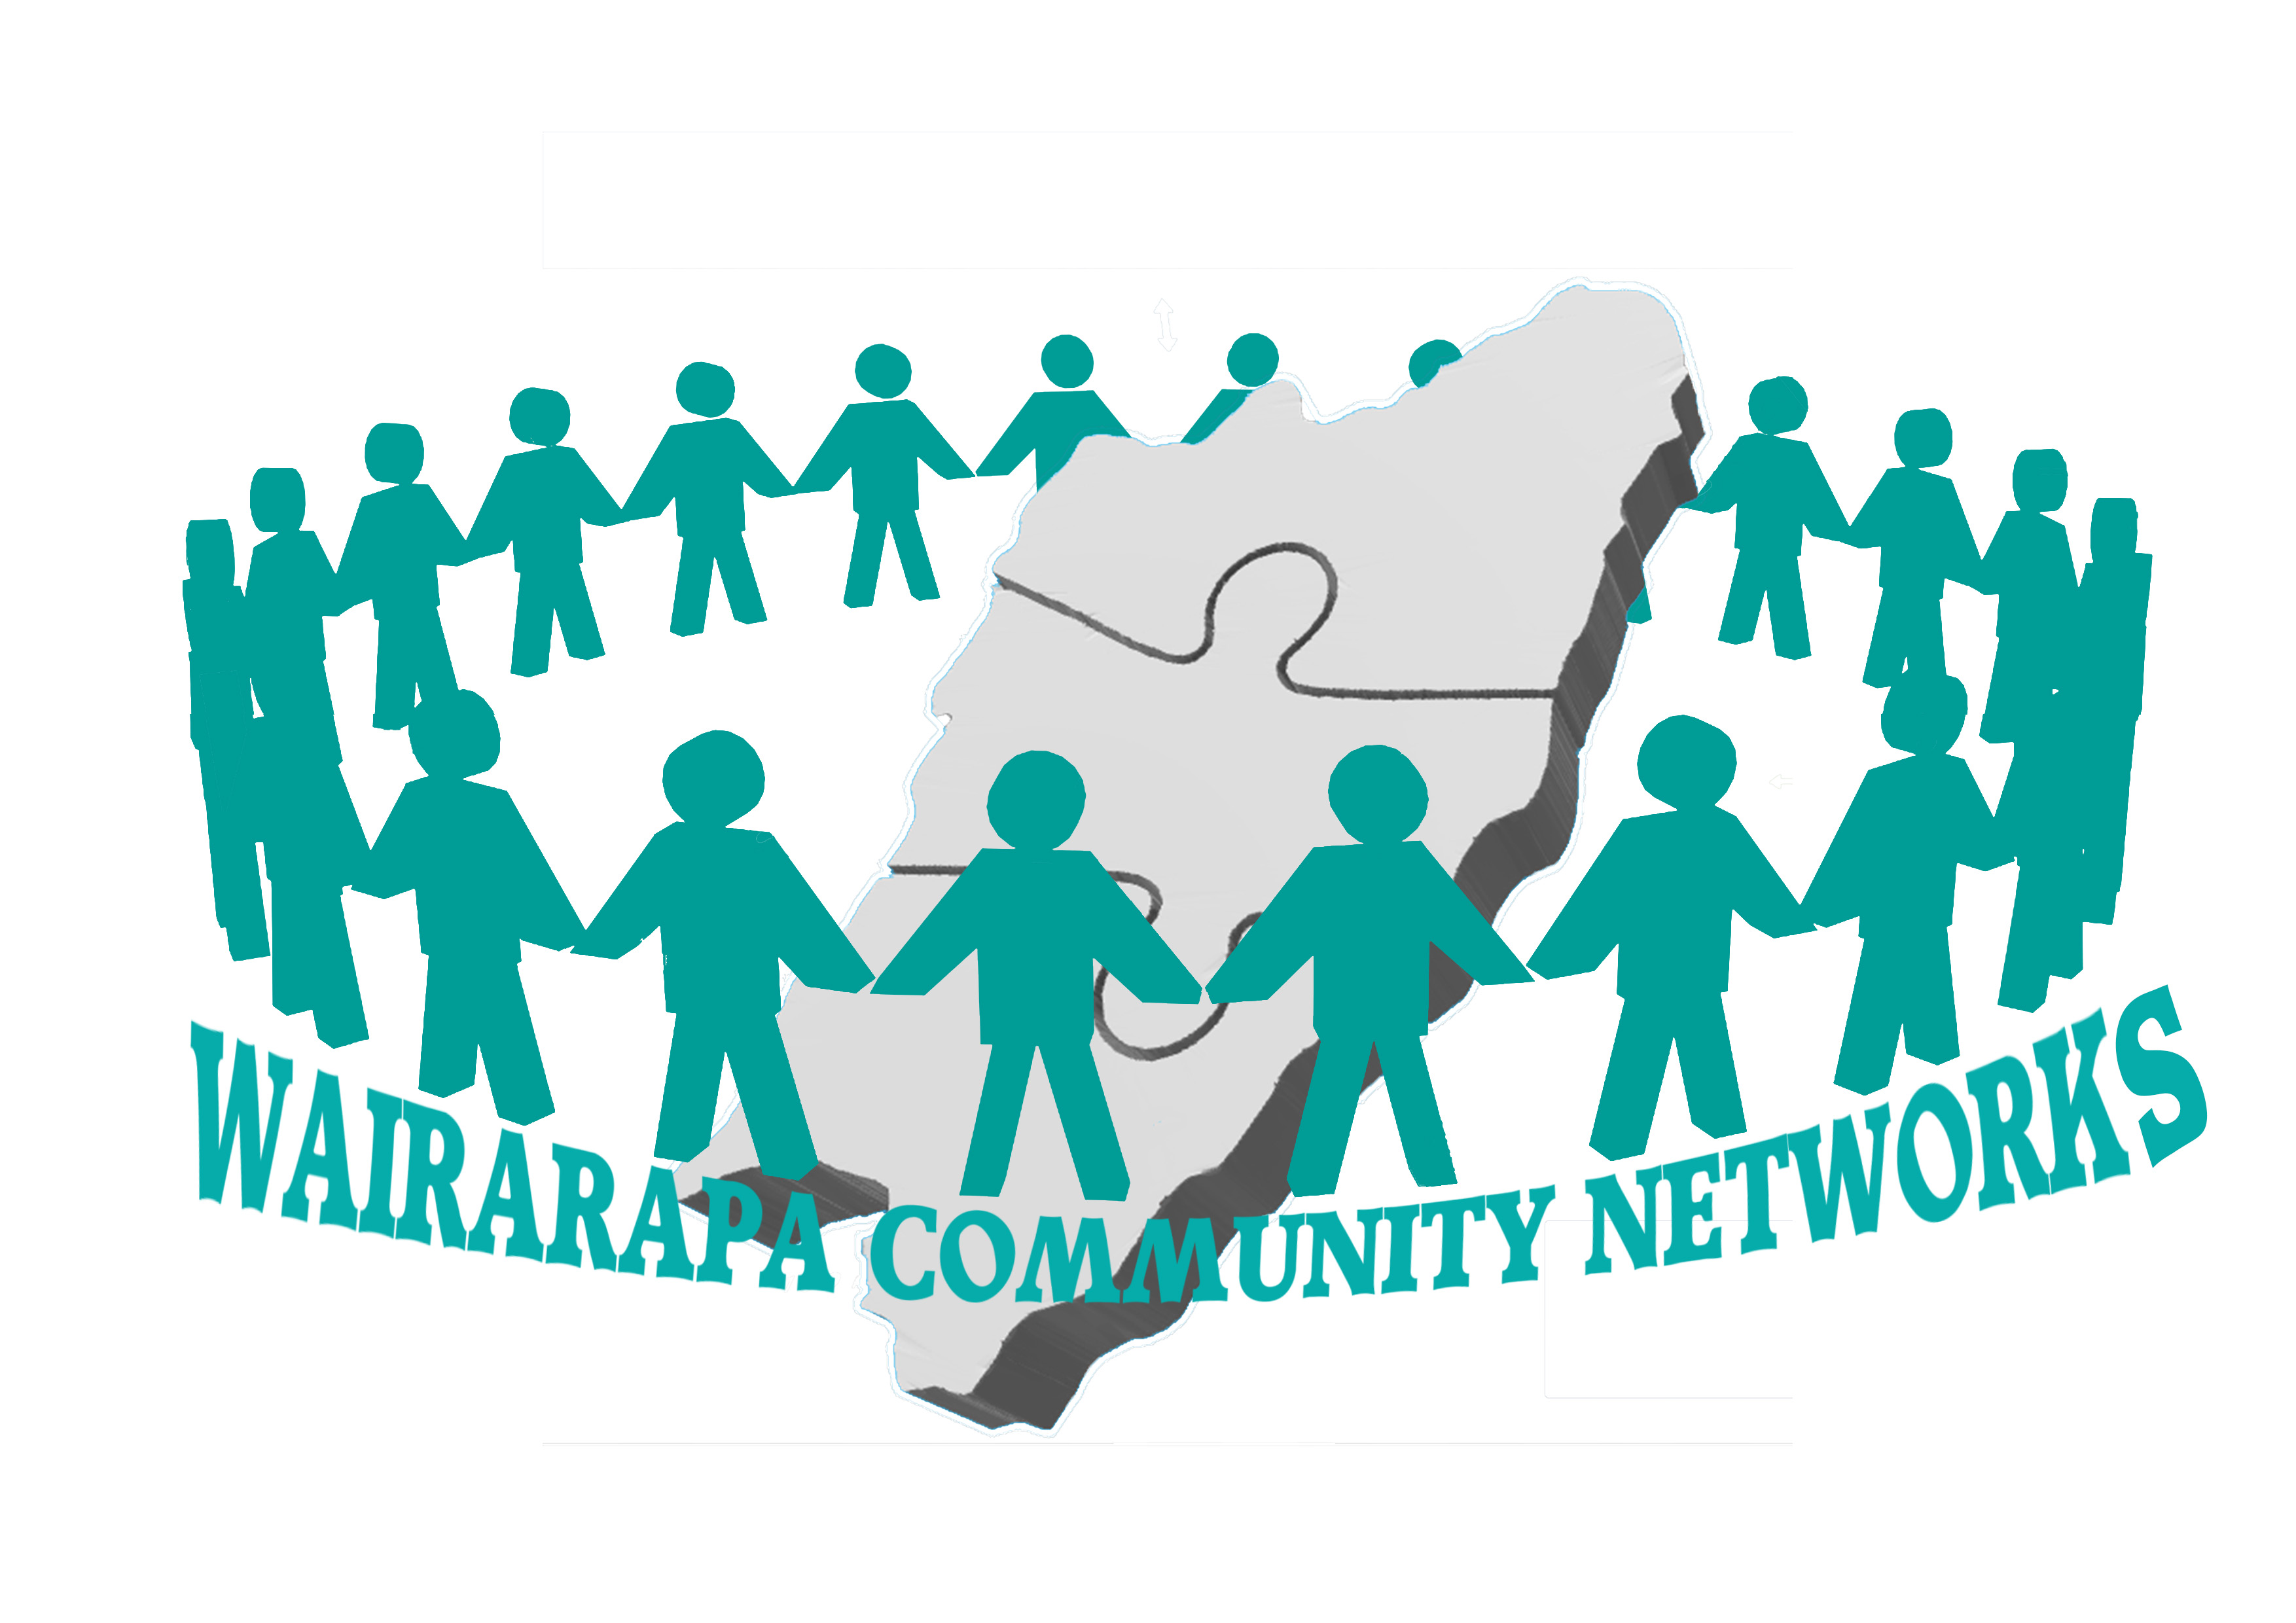 Wai Community Networks